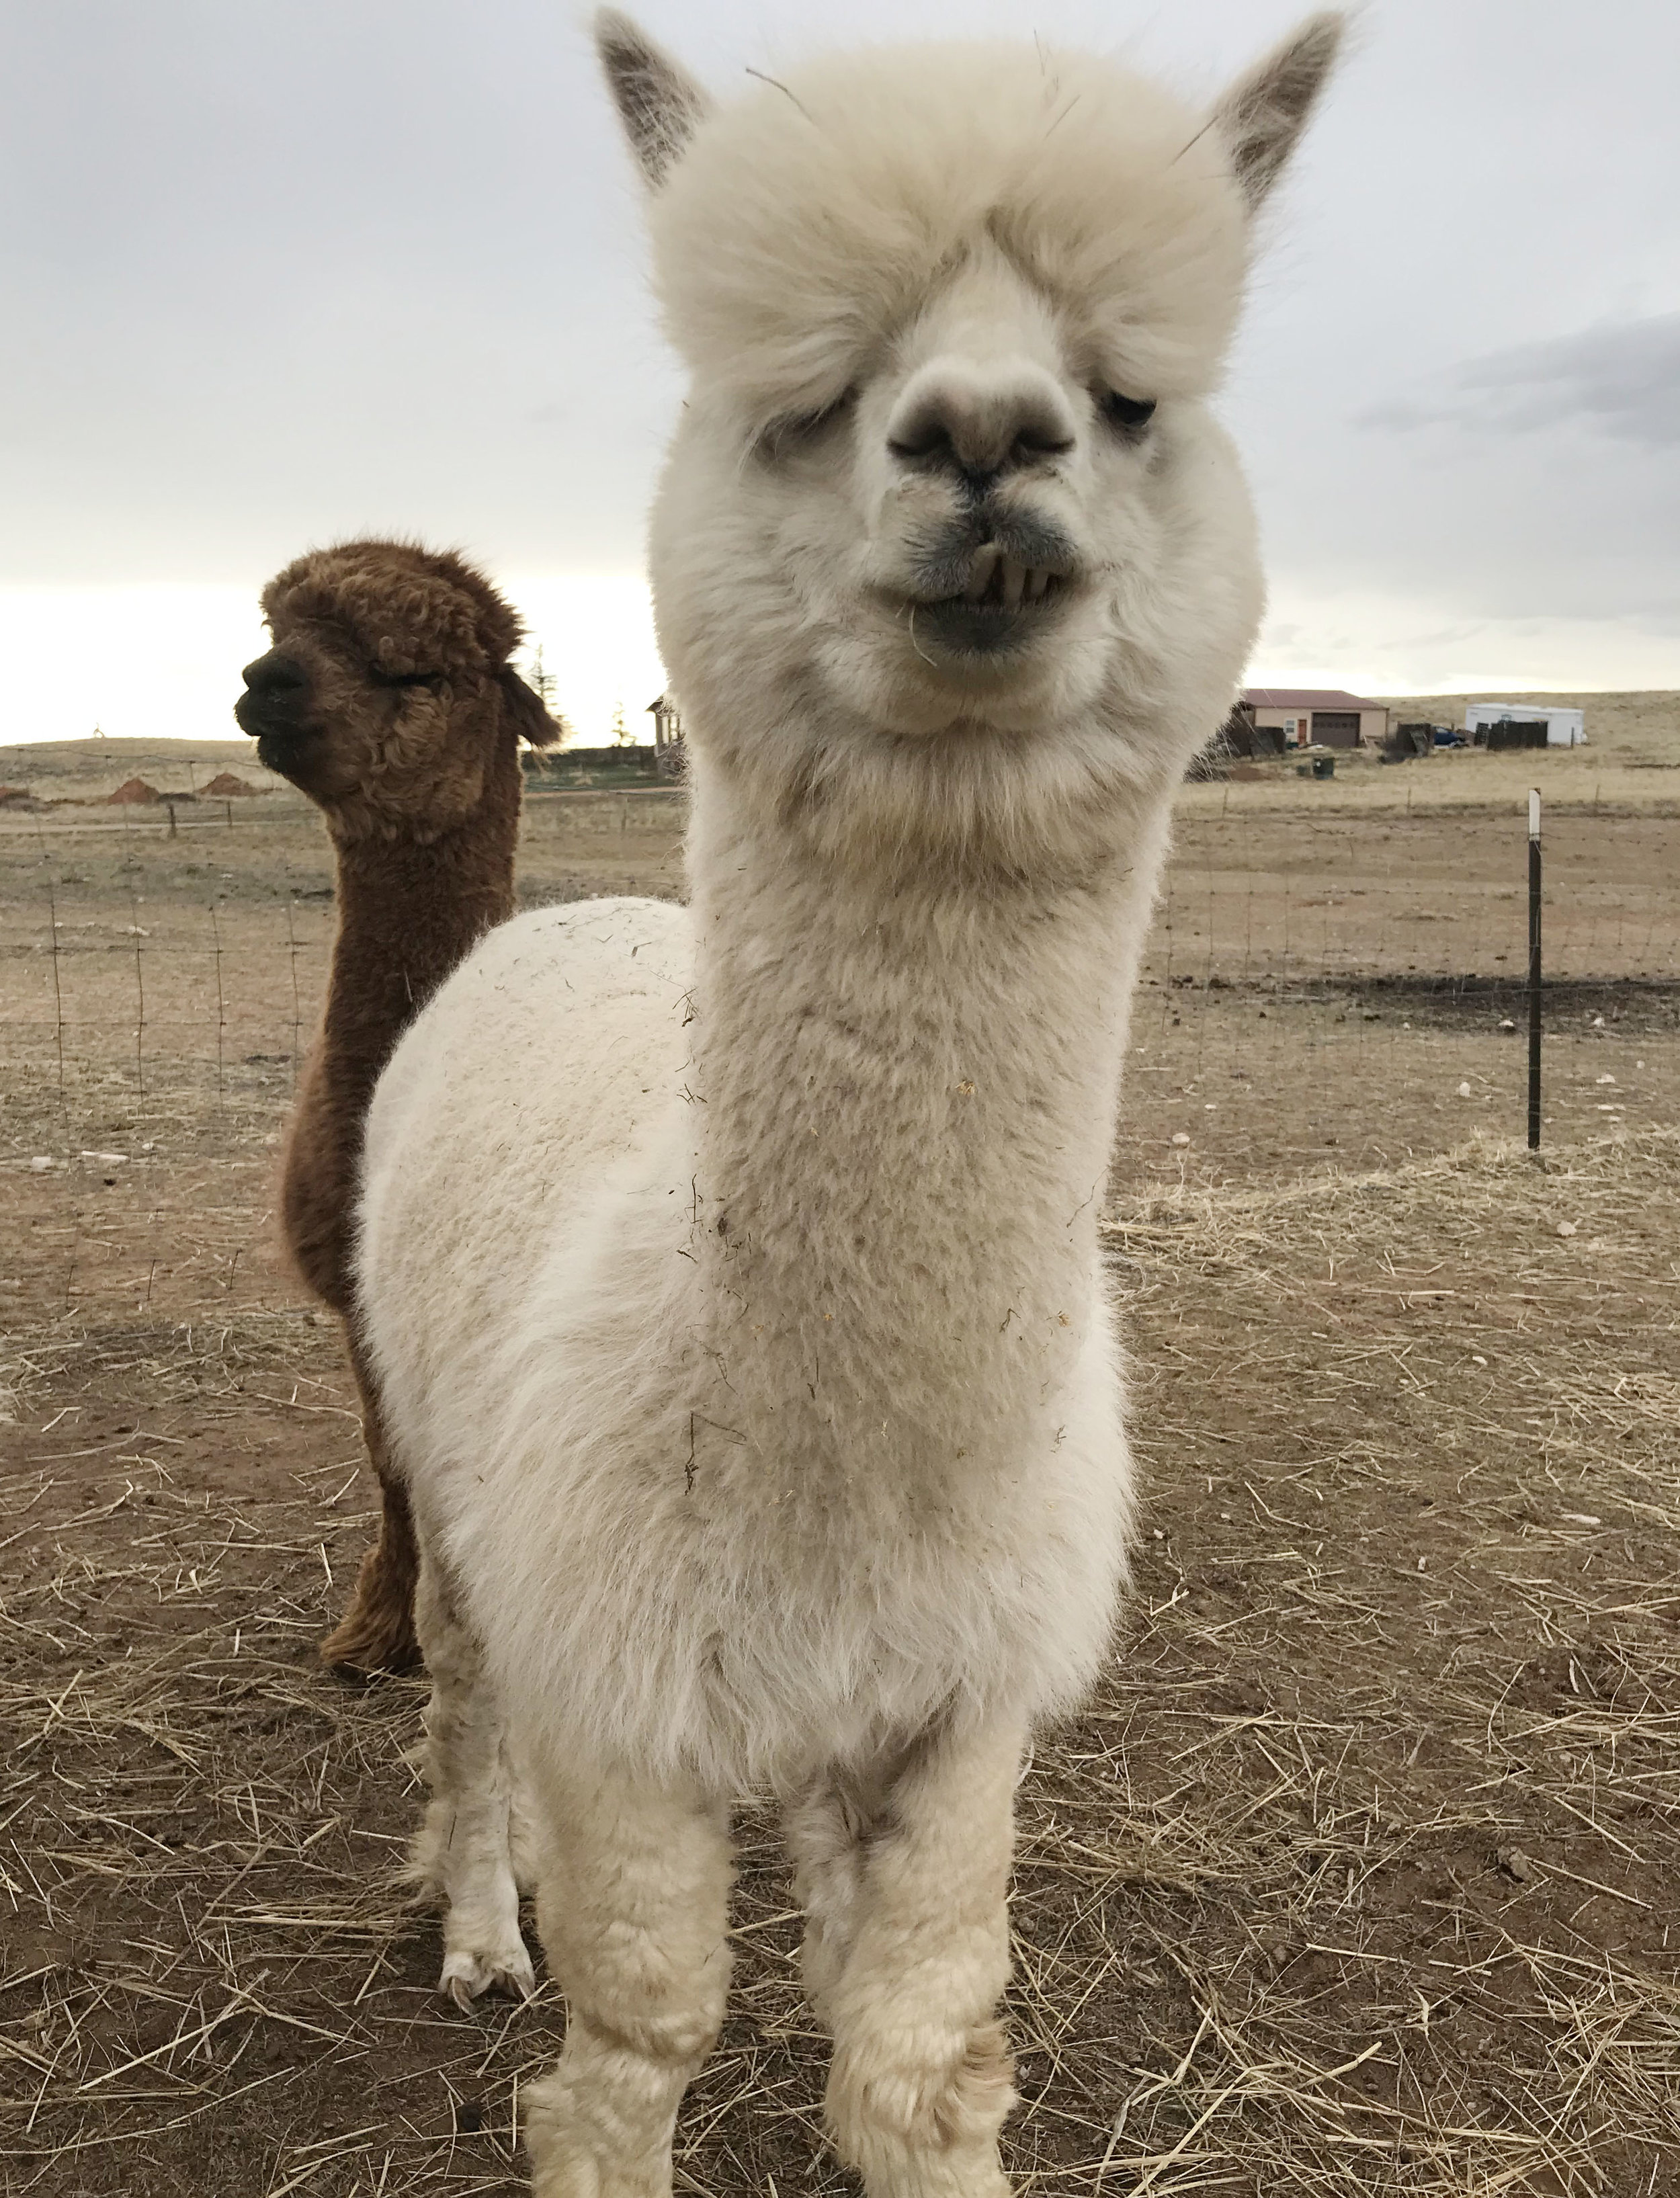 Trason the alpaca